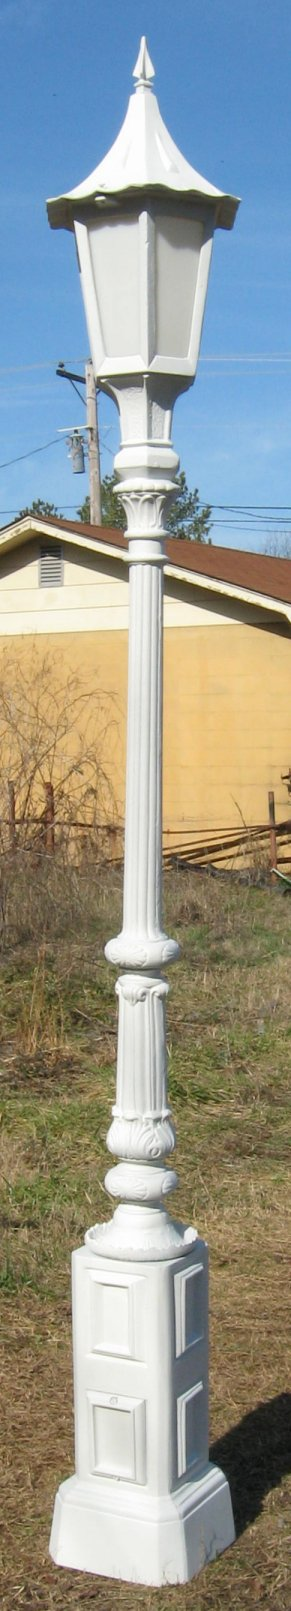 cast aluminum balboa lamp post with tudor top